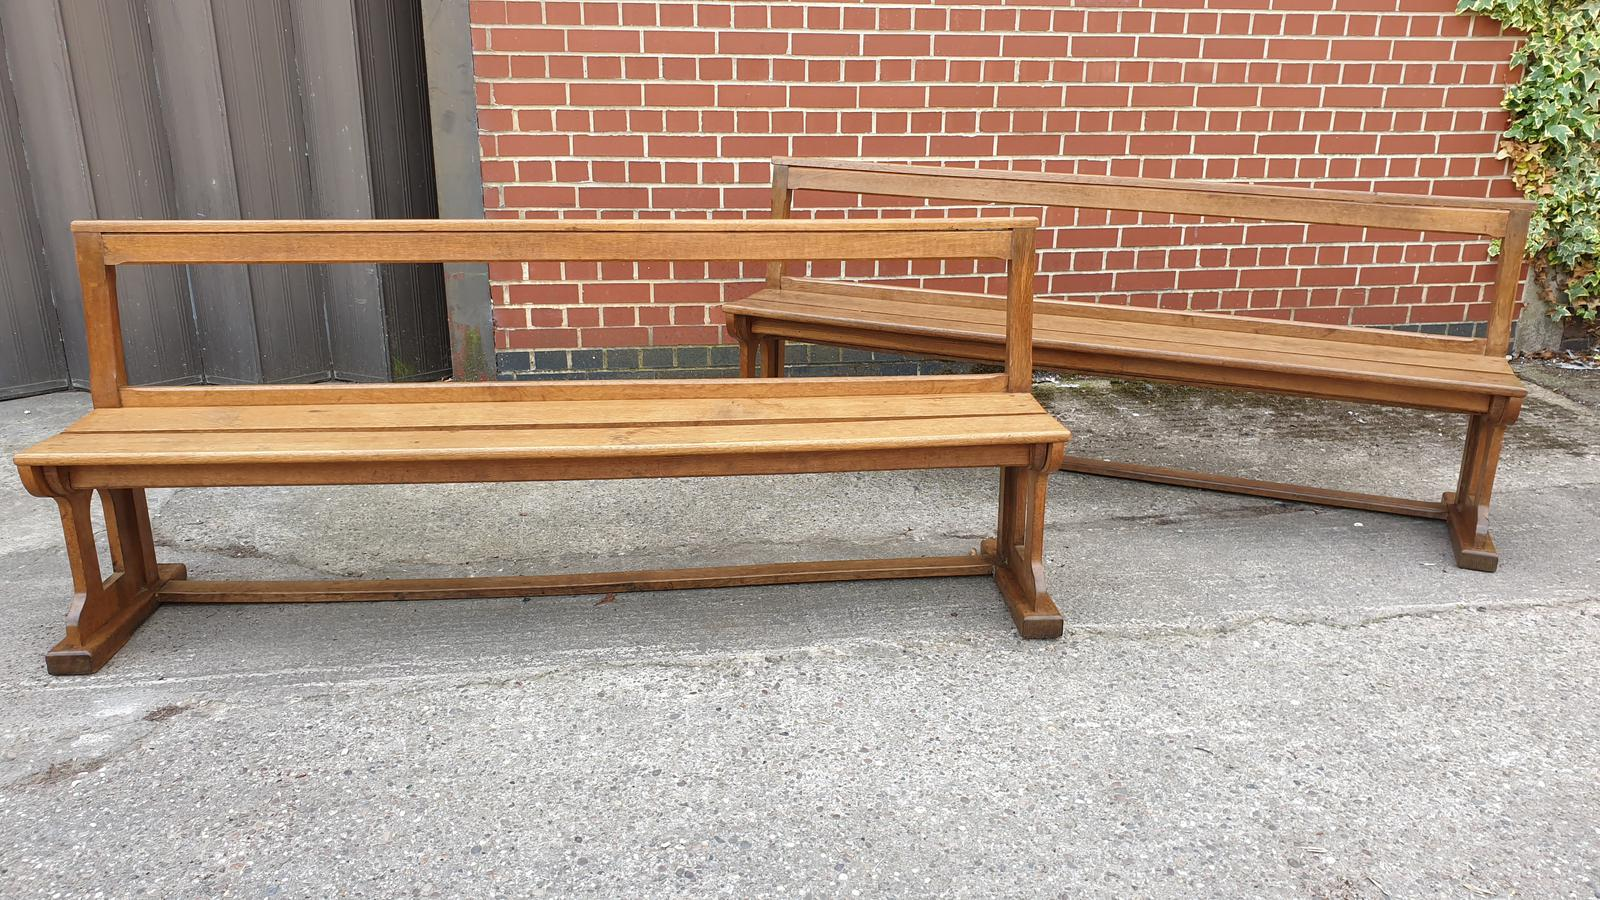 Superb Pair of Oak Benches (1 of 1)